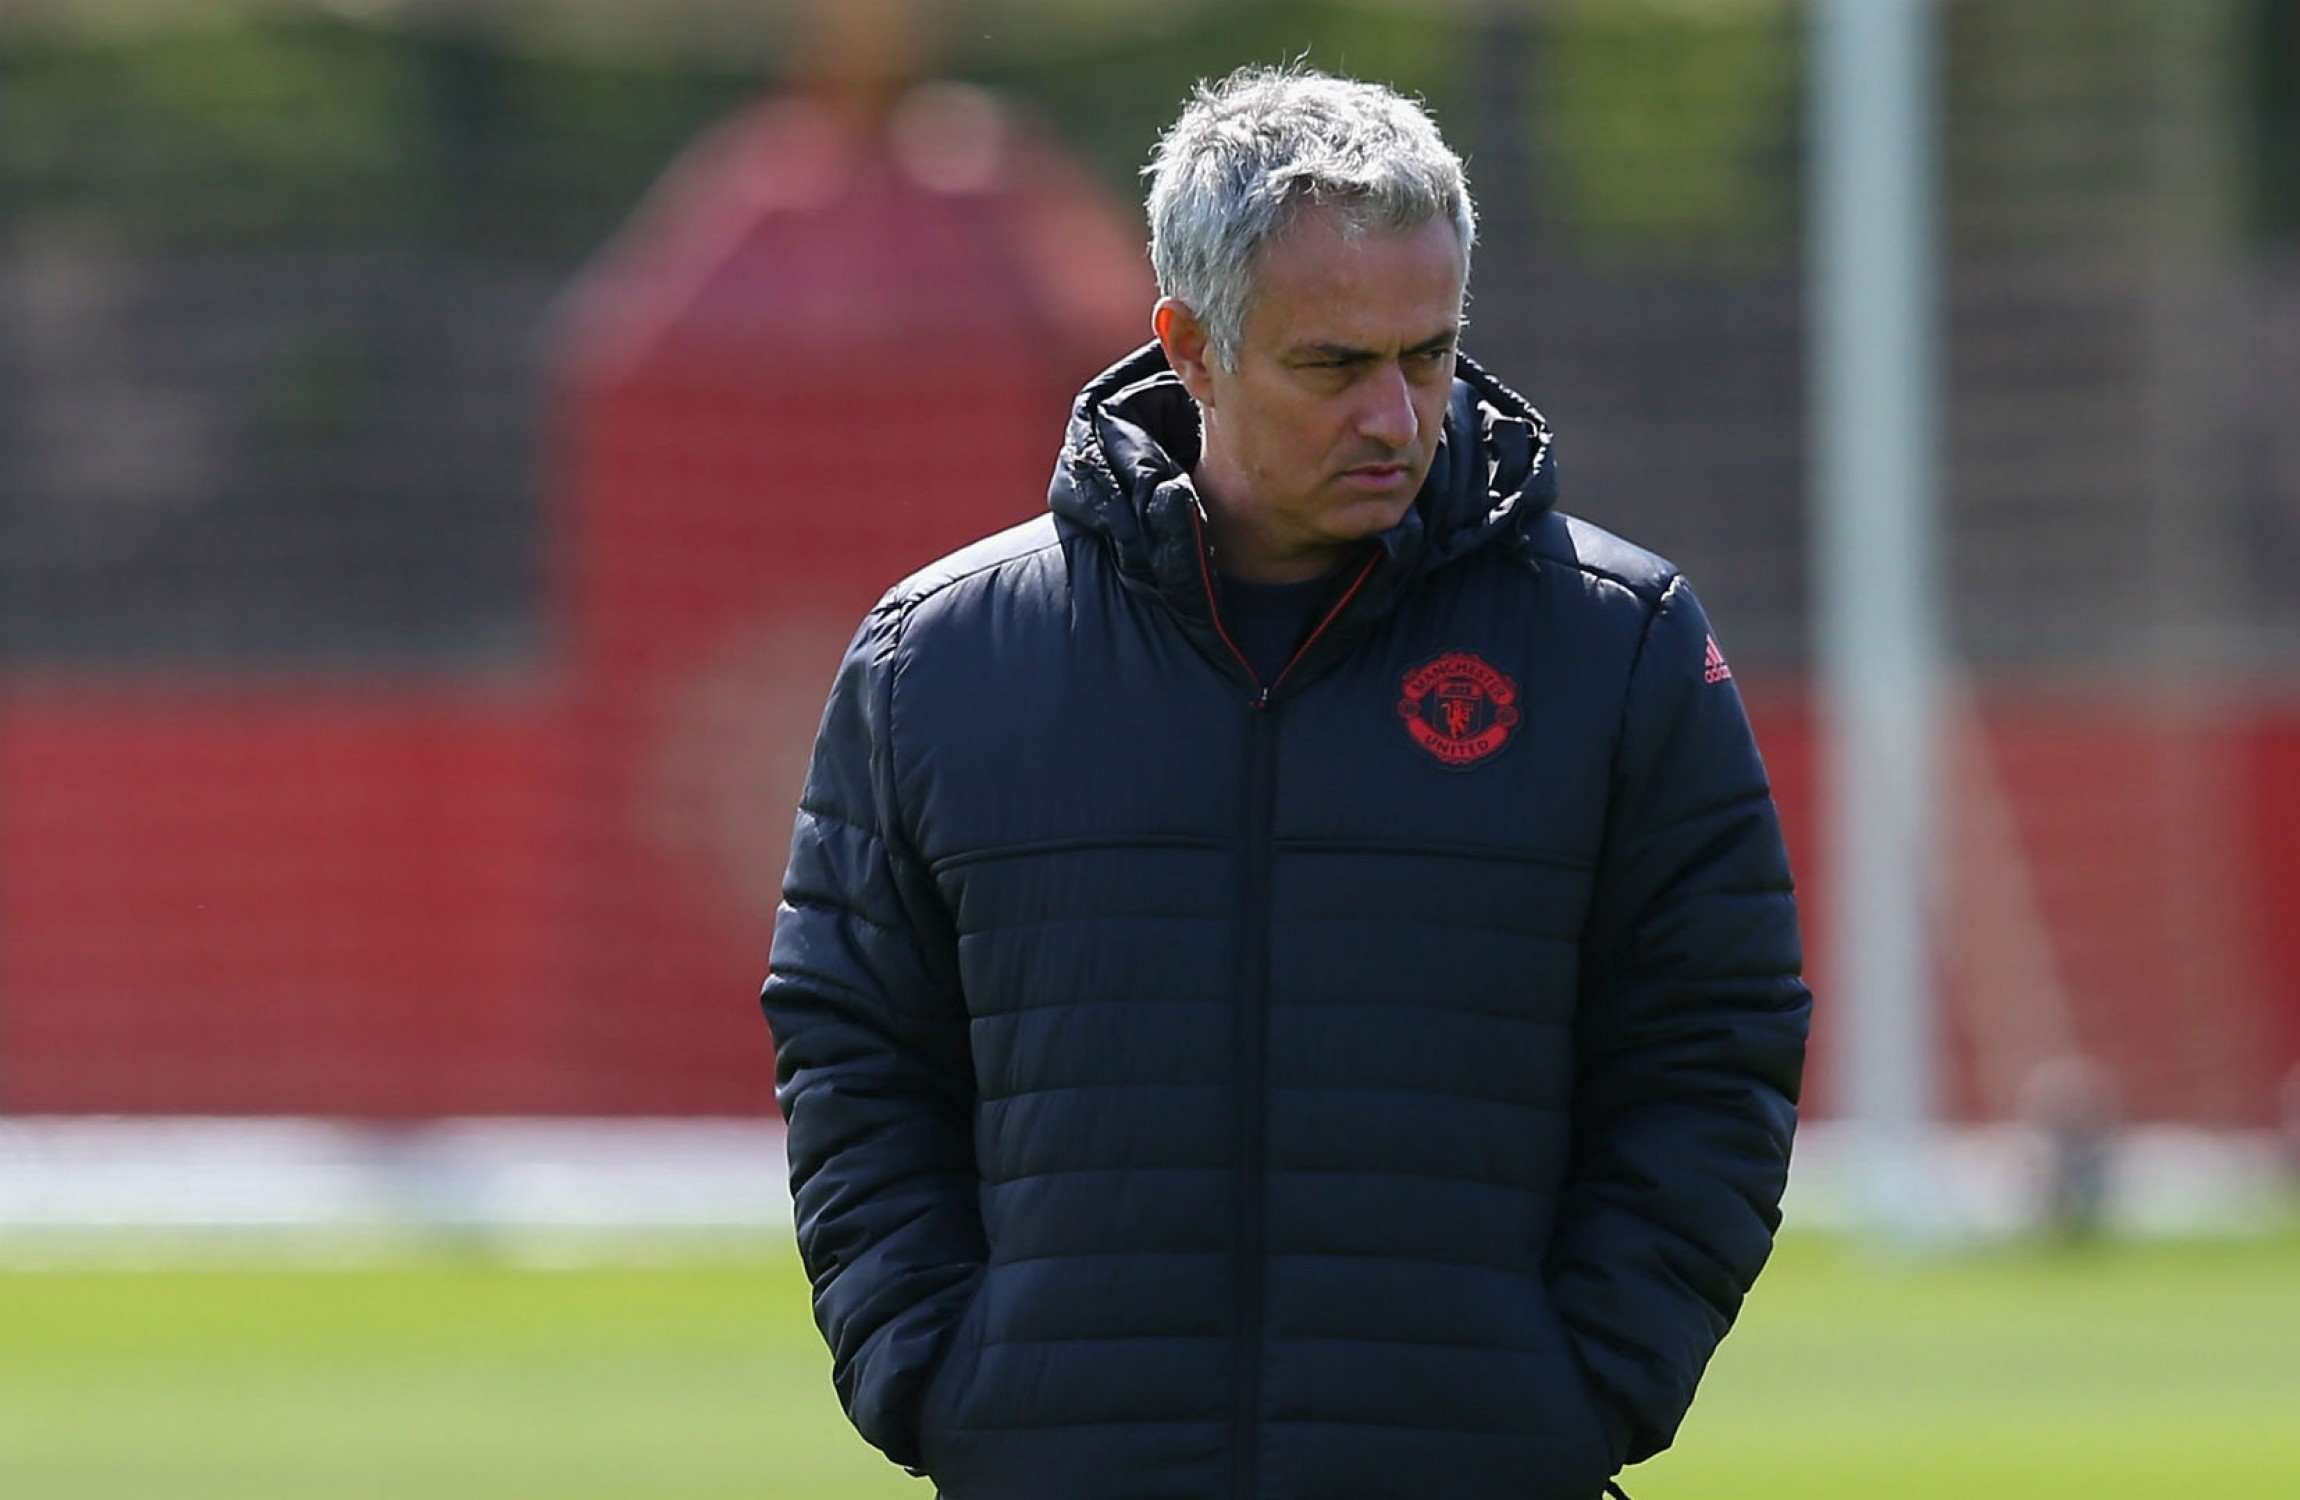 Jose Mourinho says his side will prioritise the Europa League over finishing in the top four ointhe Premier League